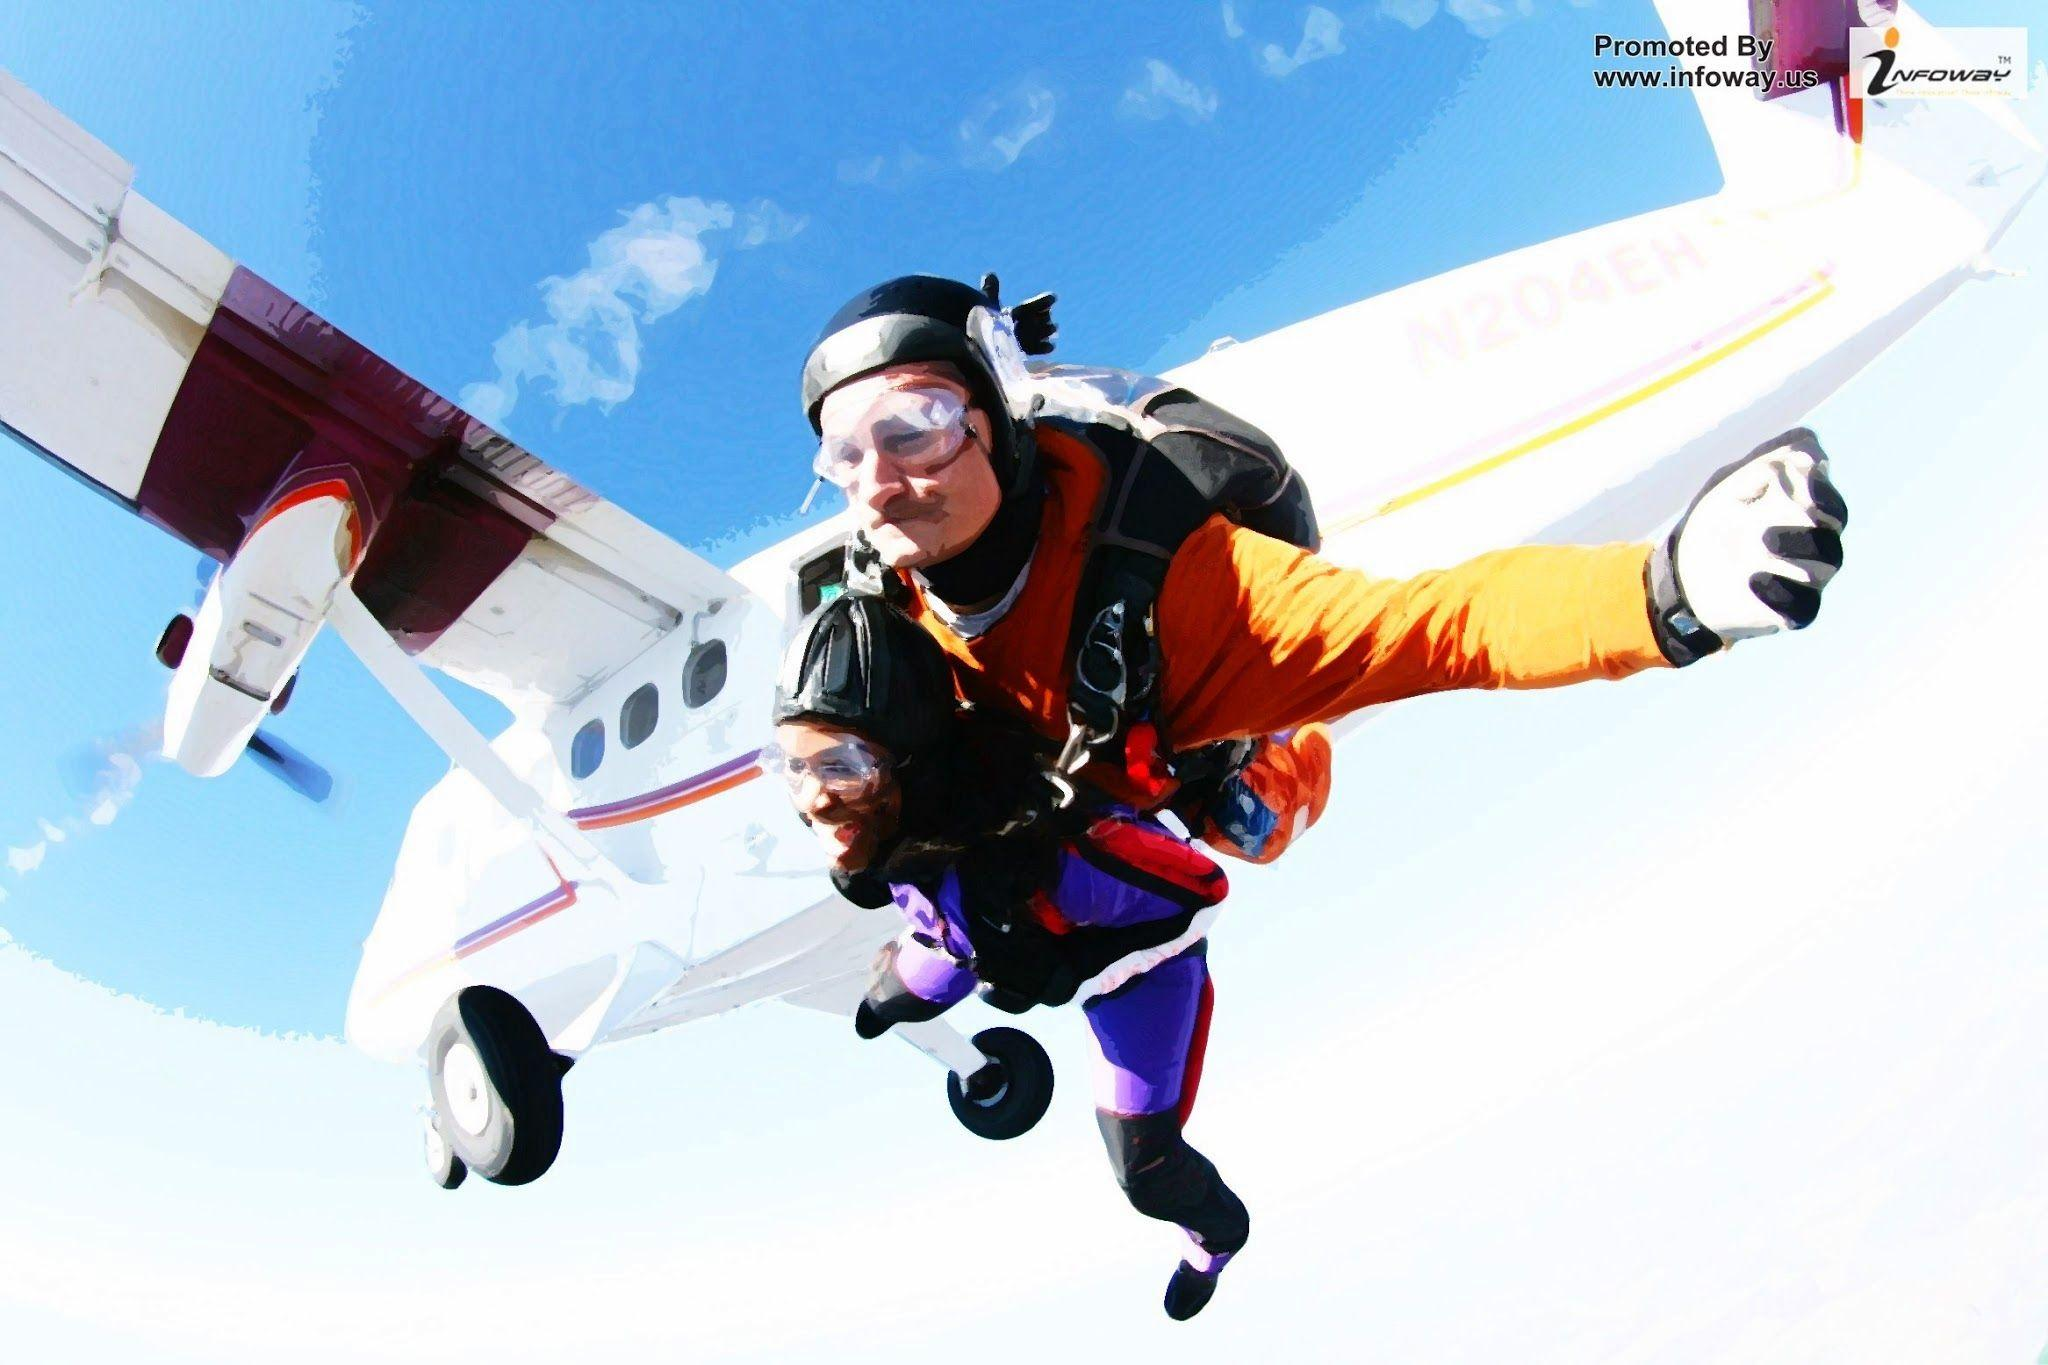 Sports Skydiving high quality Wallpapers - Wallpapers Points